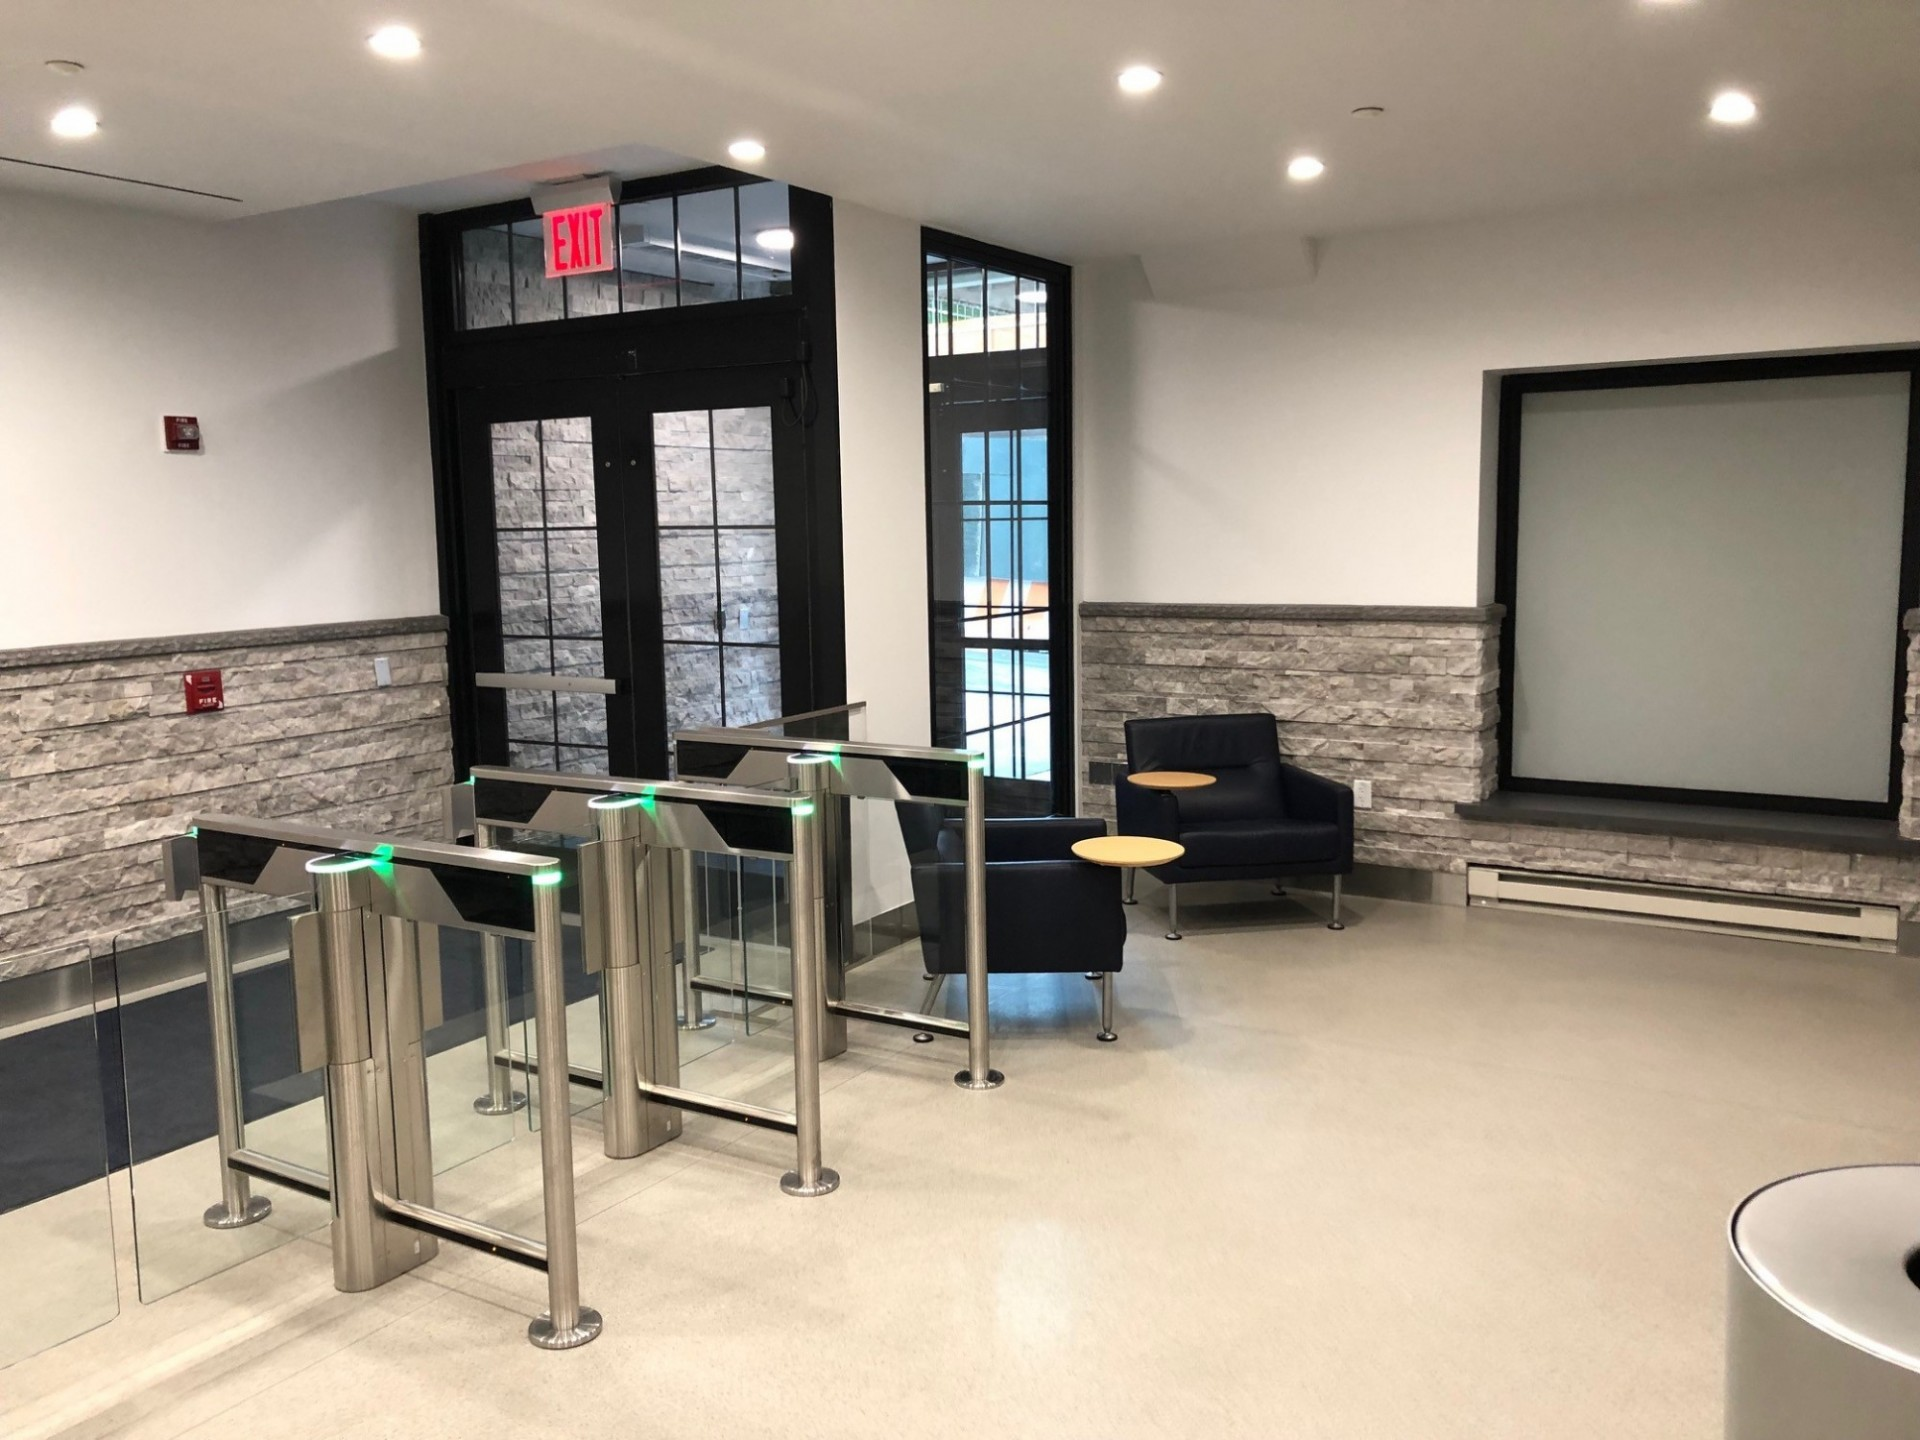 Turnstiles were installed at the lobby entrance, similar to what is in place at other Columbia buildings in Manhattanville.